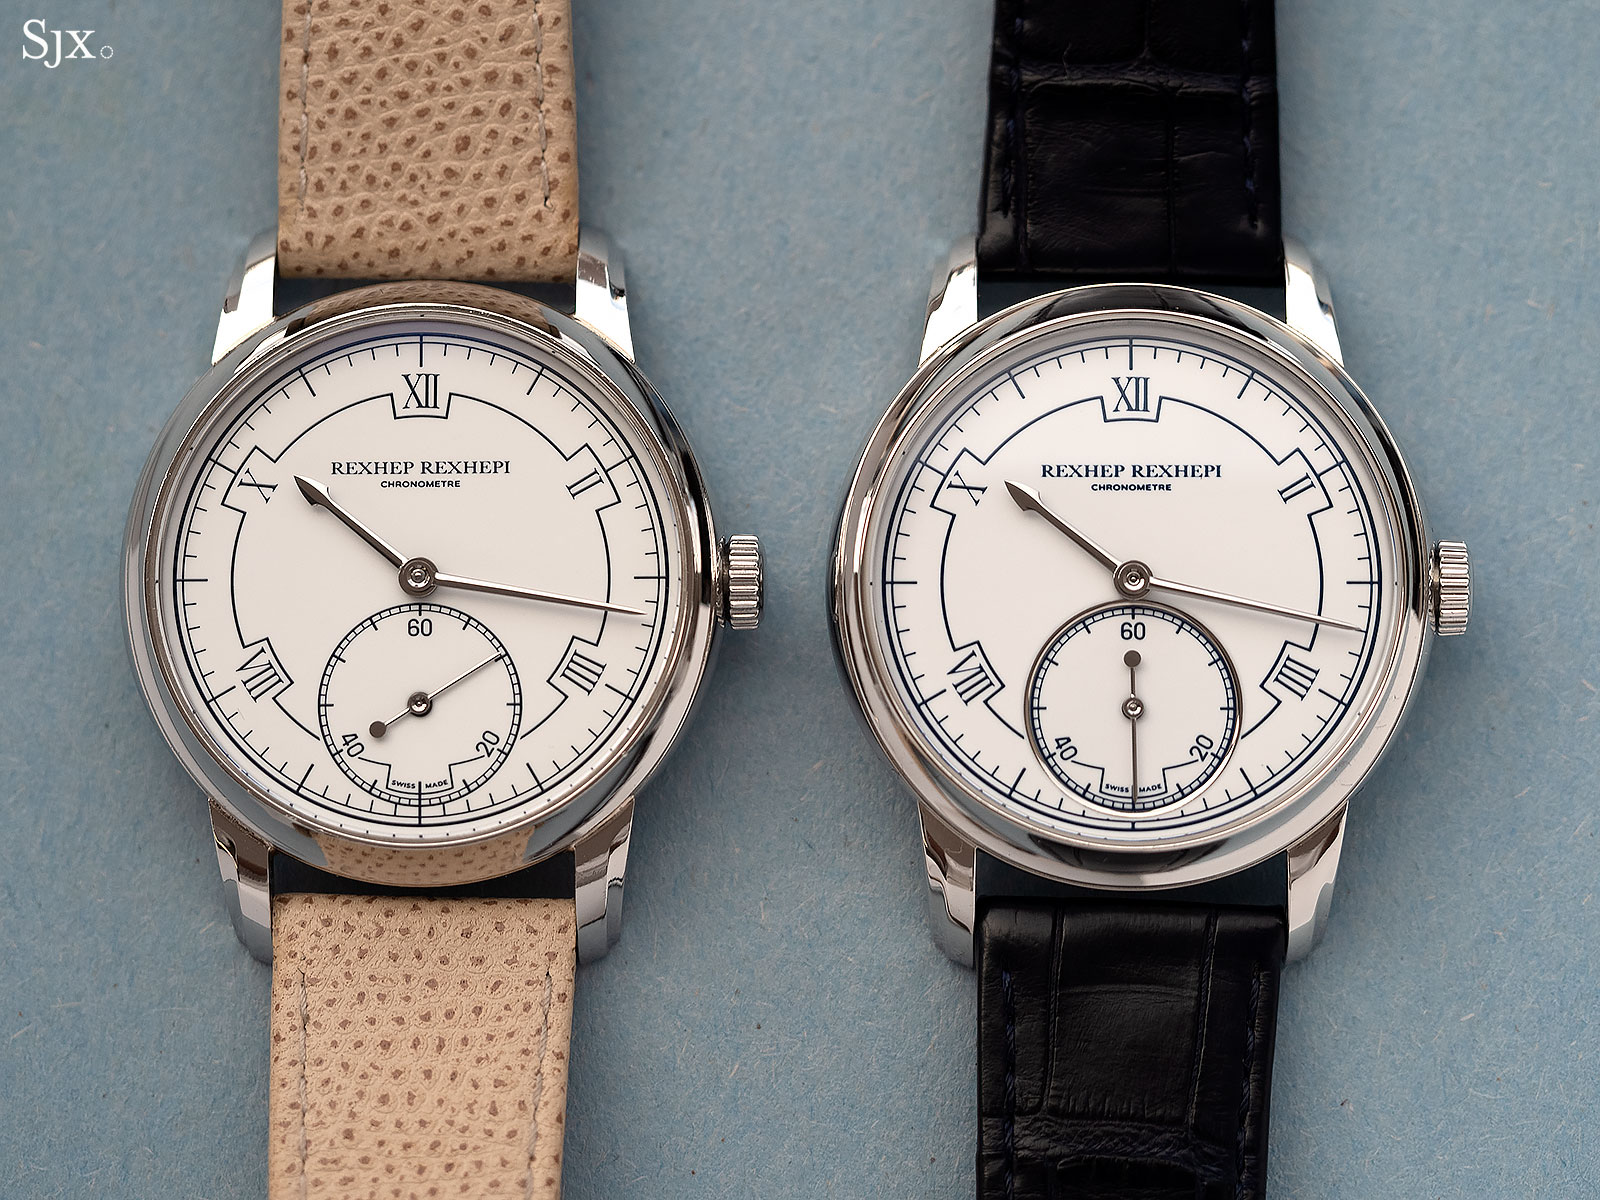 rexhep akrivia chronometre contemporain compare 3